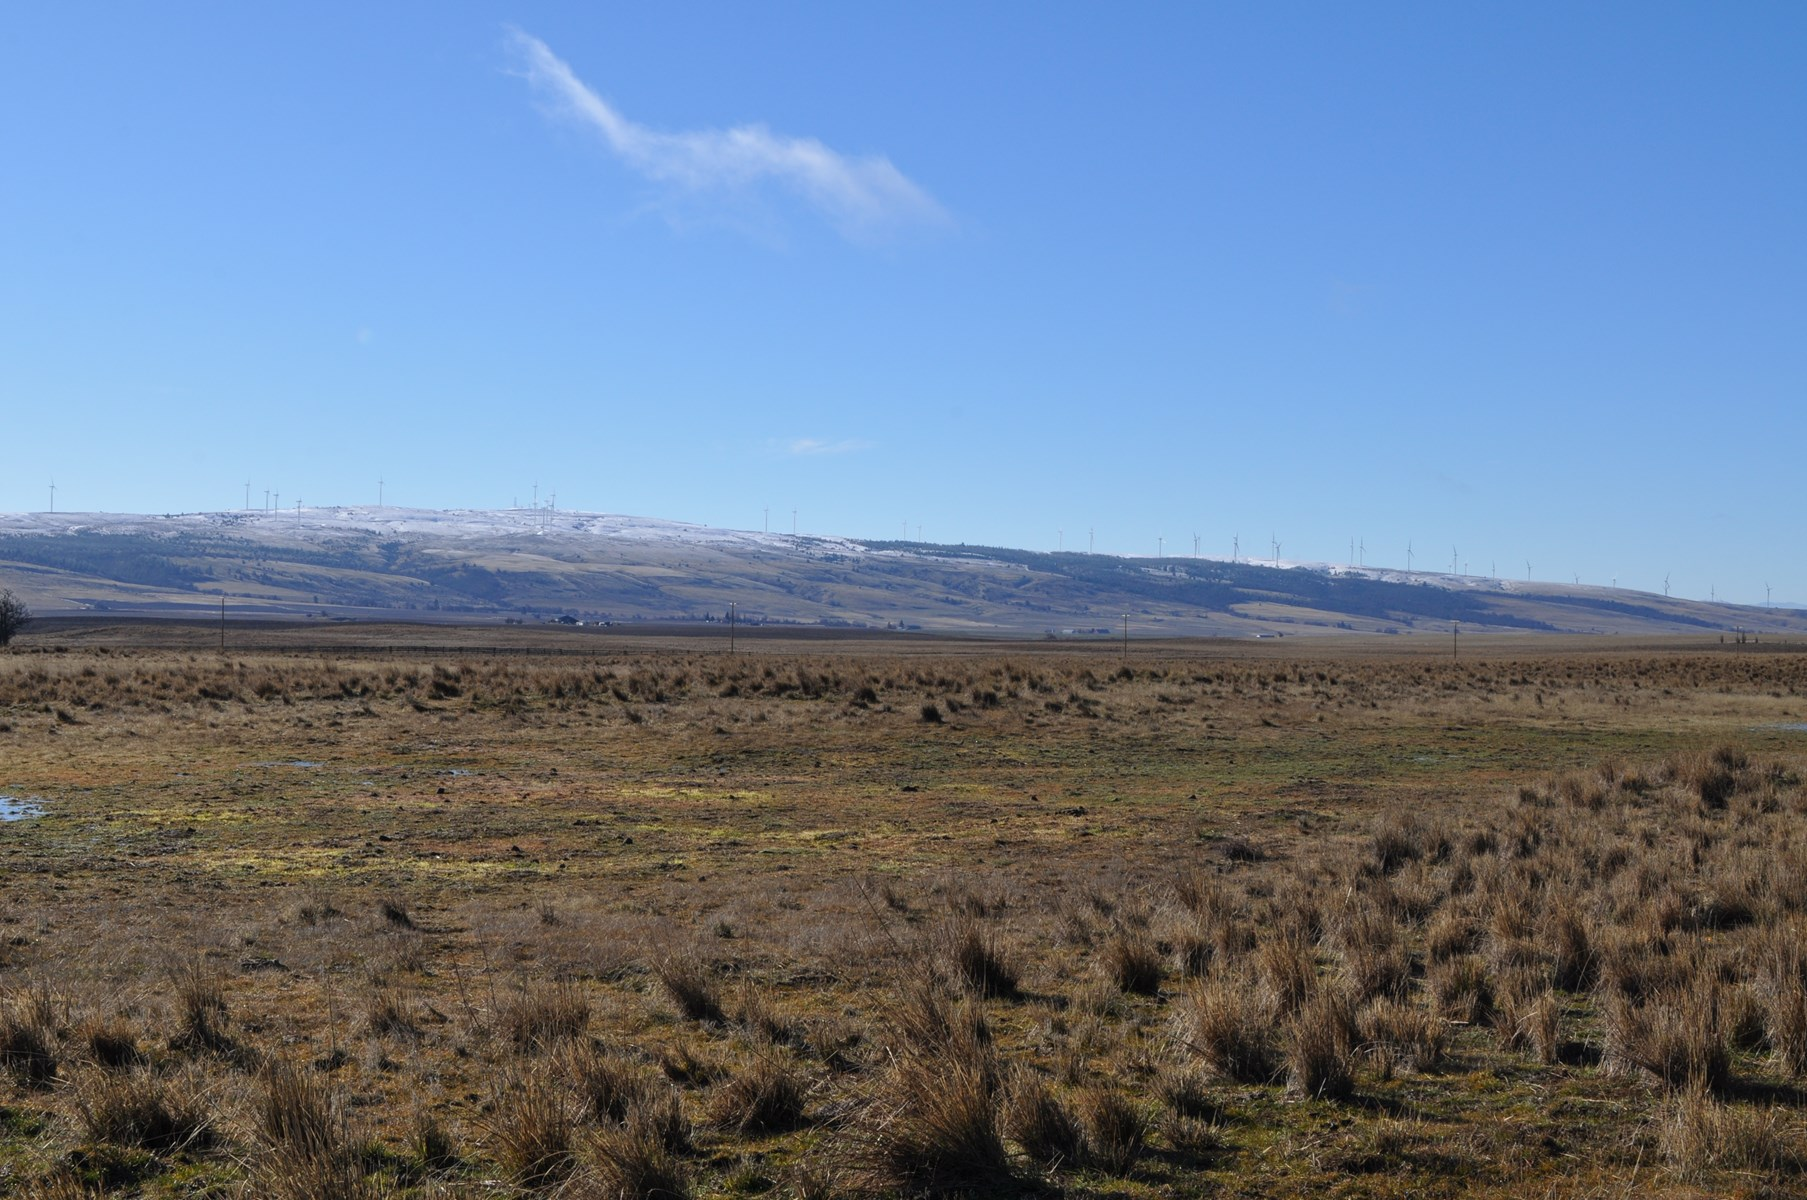 Land for sale in Goldendale Washington, near Columbia river